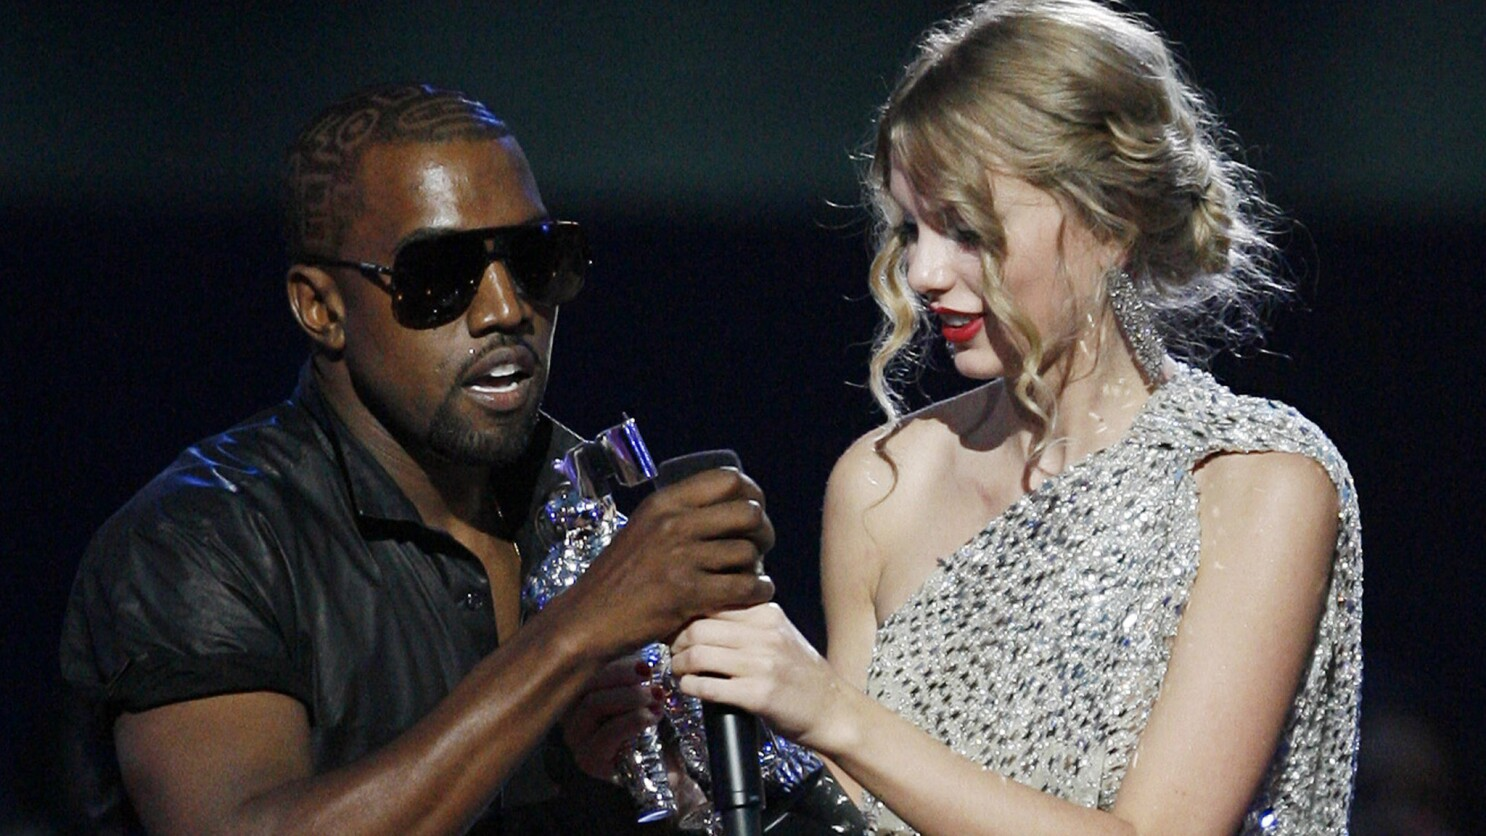 Kanye West Vs Taylor Swift A Timeline Of The Drama Which Now Includes Kim Kardashian West Los Angeles Times